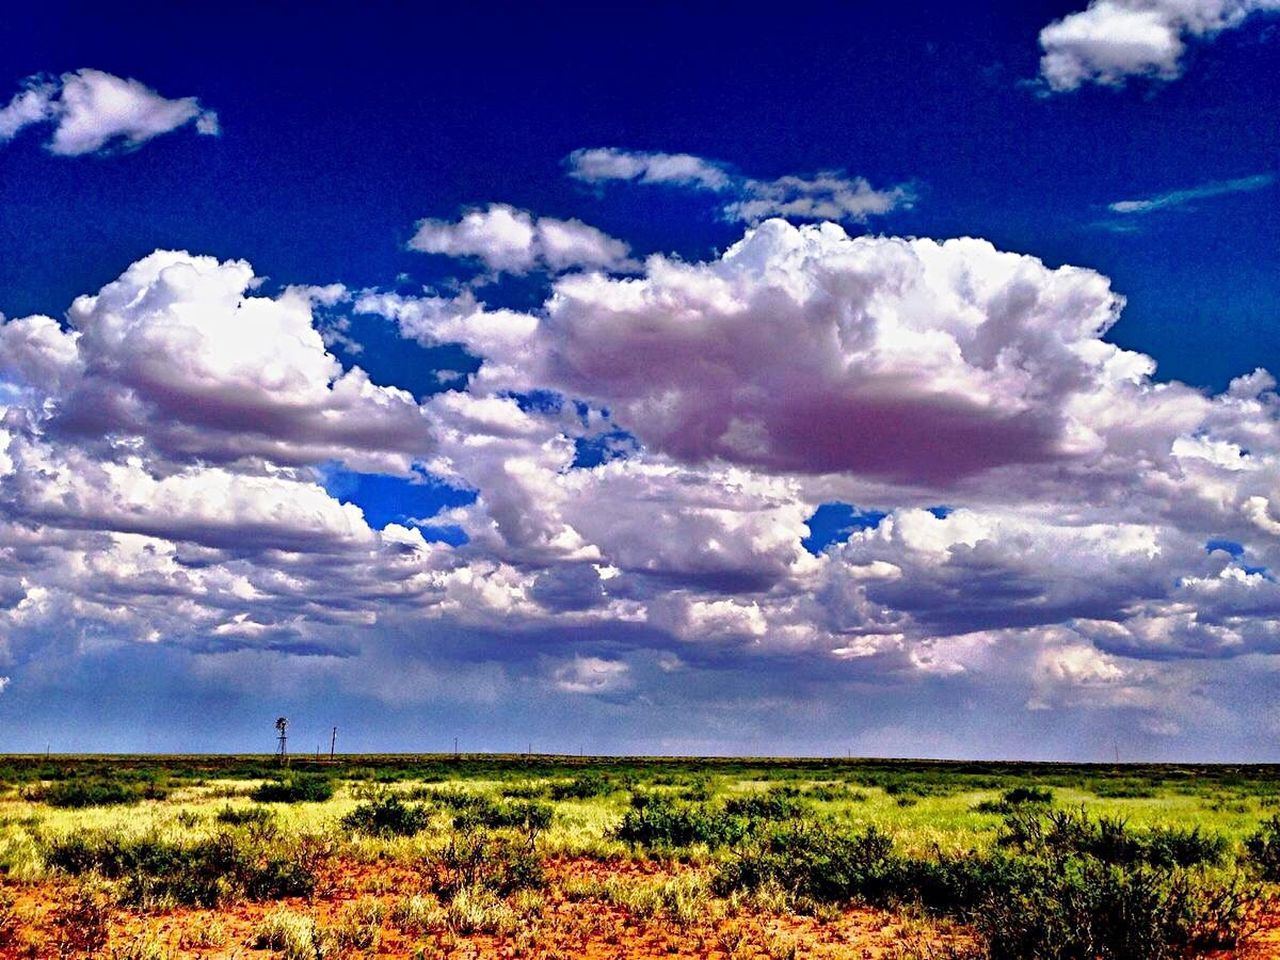 Cloud - Sky Sky Landscape Scenics Nature Outdoors Beauty In Nature No People Field Tranquility Cumulus Cloud Grass Travel Destinations Beauty Day Tranquil Scene Westtexasskies Windmill